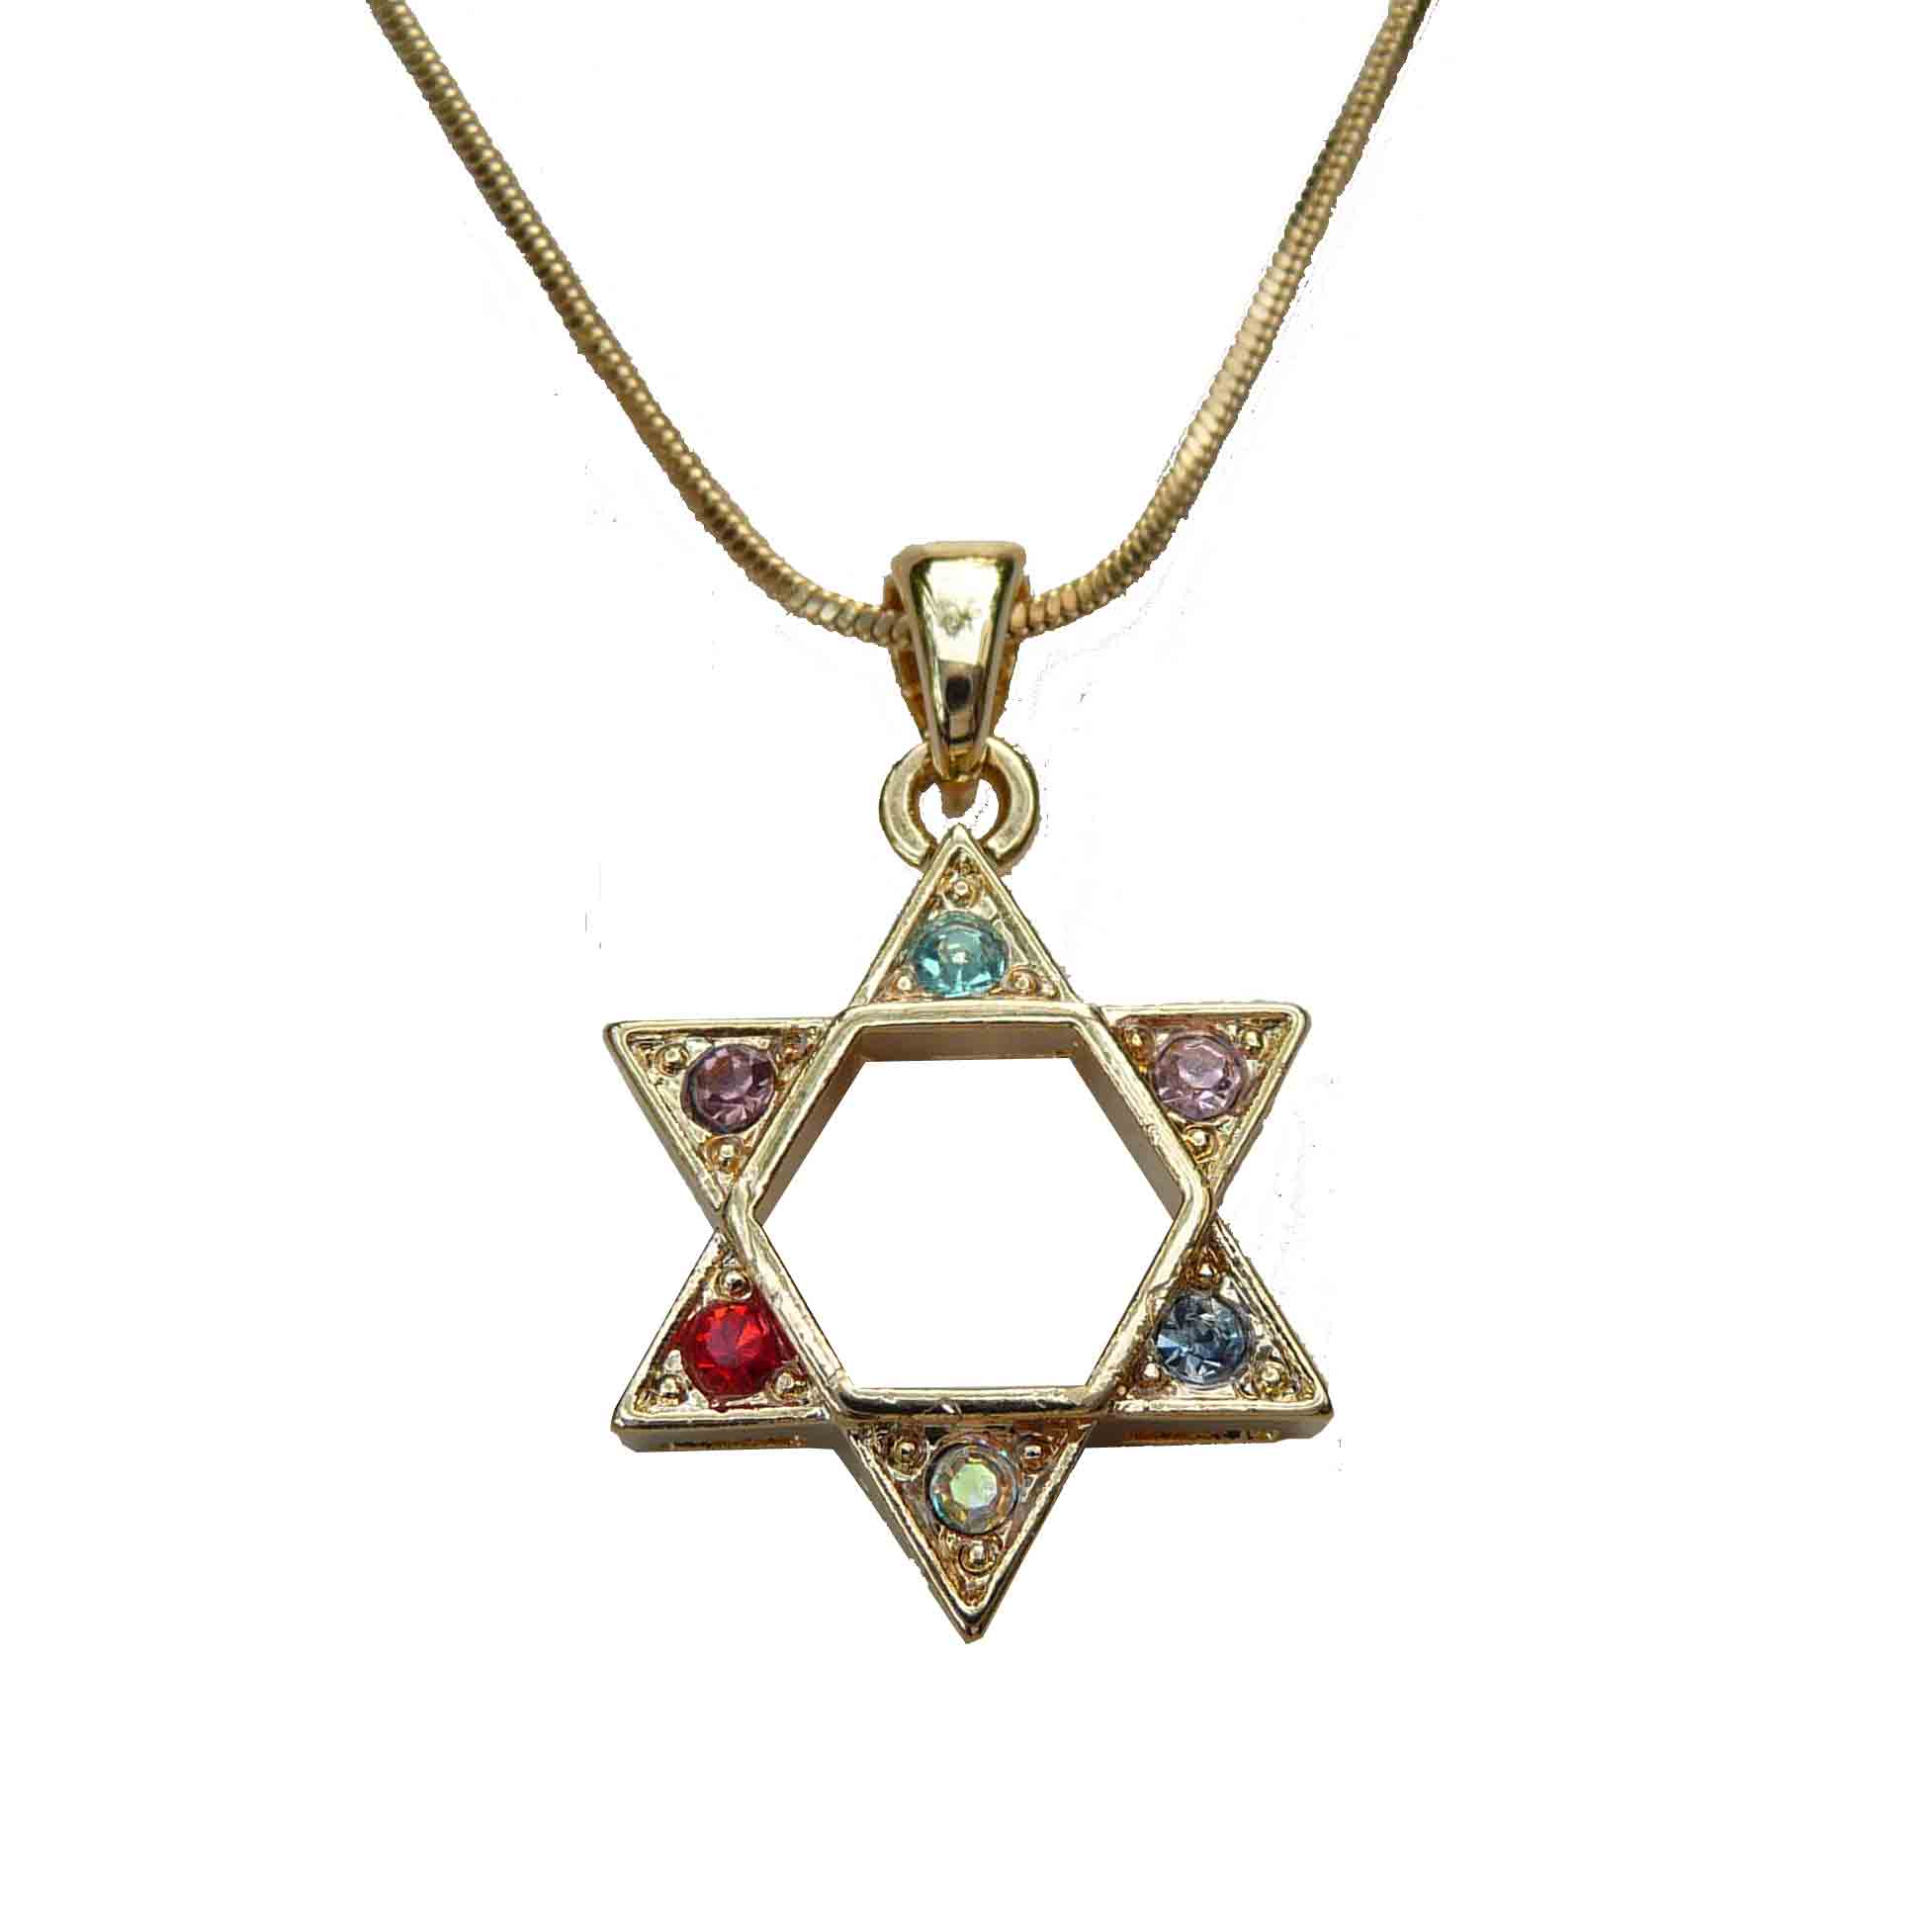 Star of David Necklace with Multi-colored Stones